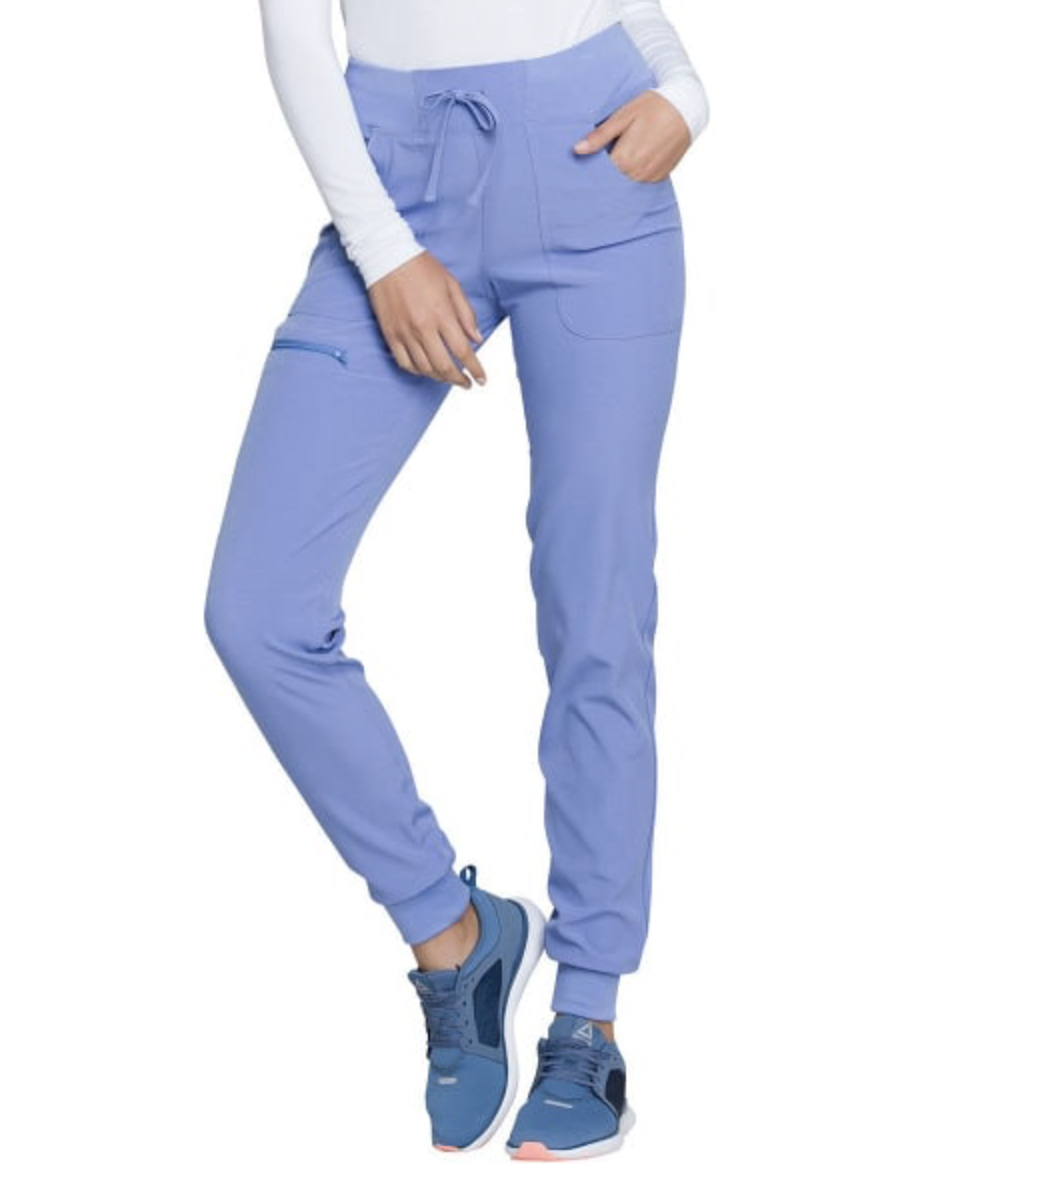 Women's The Jogger Low Rise Tapered Leg Scrub Pant Medical Hospital Uniform Medical Scrub Pant